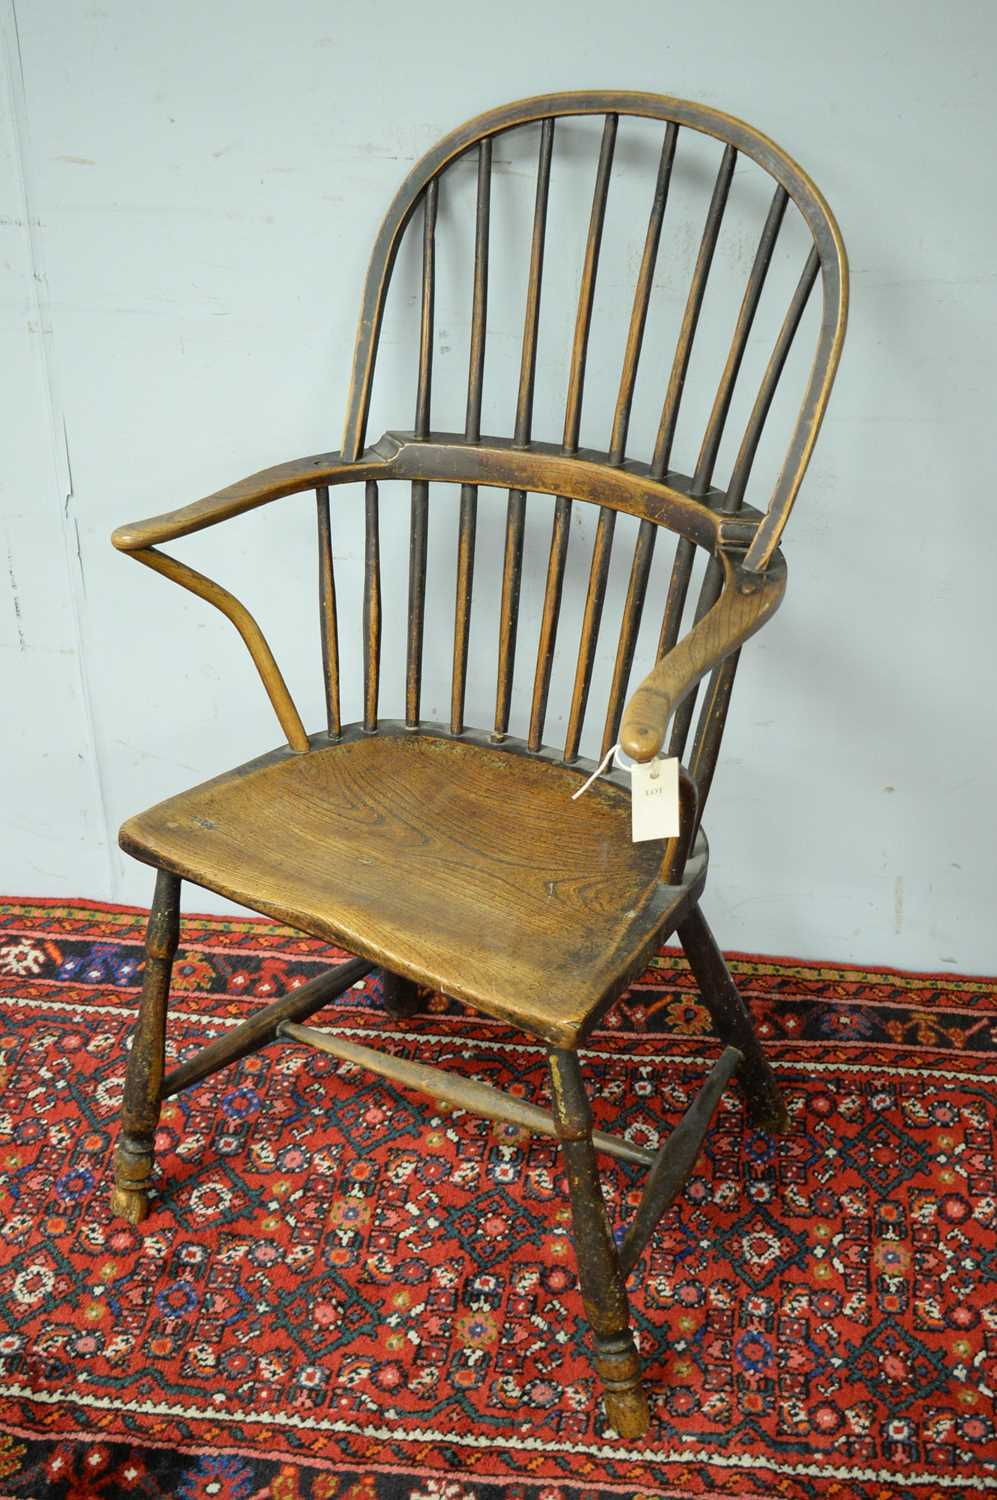 19th C Windsor chair. - Image 5 of 5